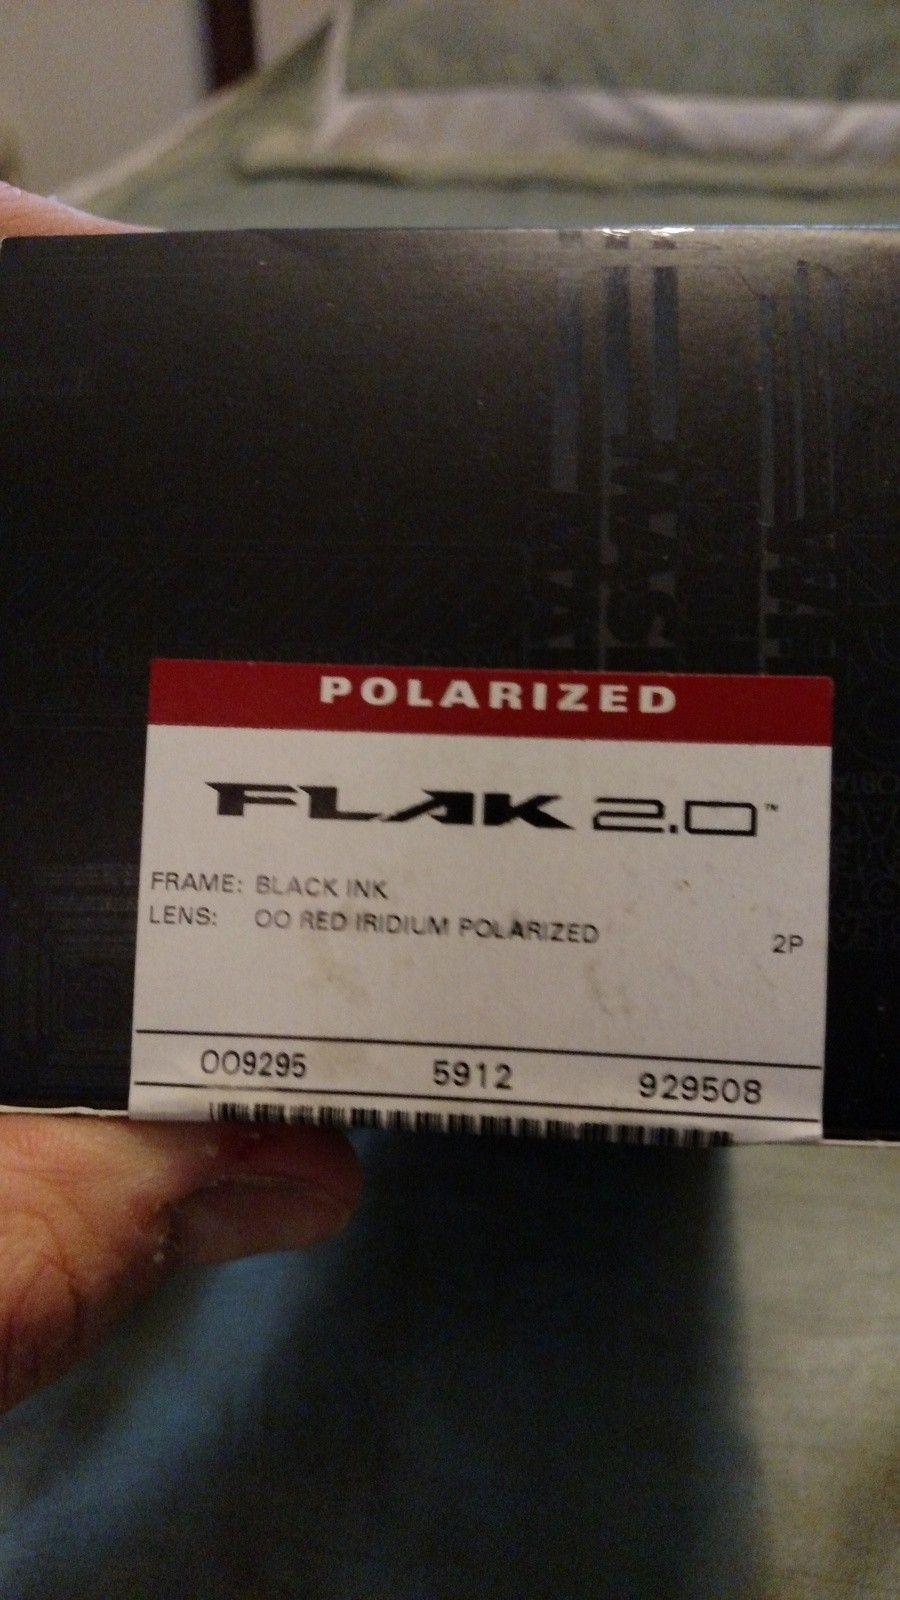 Flak 2.0  Black Ink with 00 Red Iridium Polarized - IMG_20151126_155818482[1].jpg